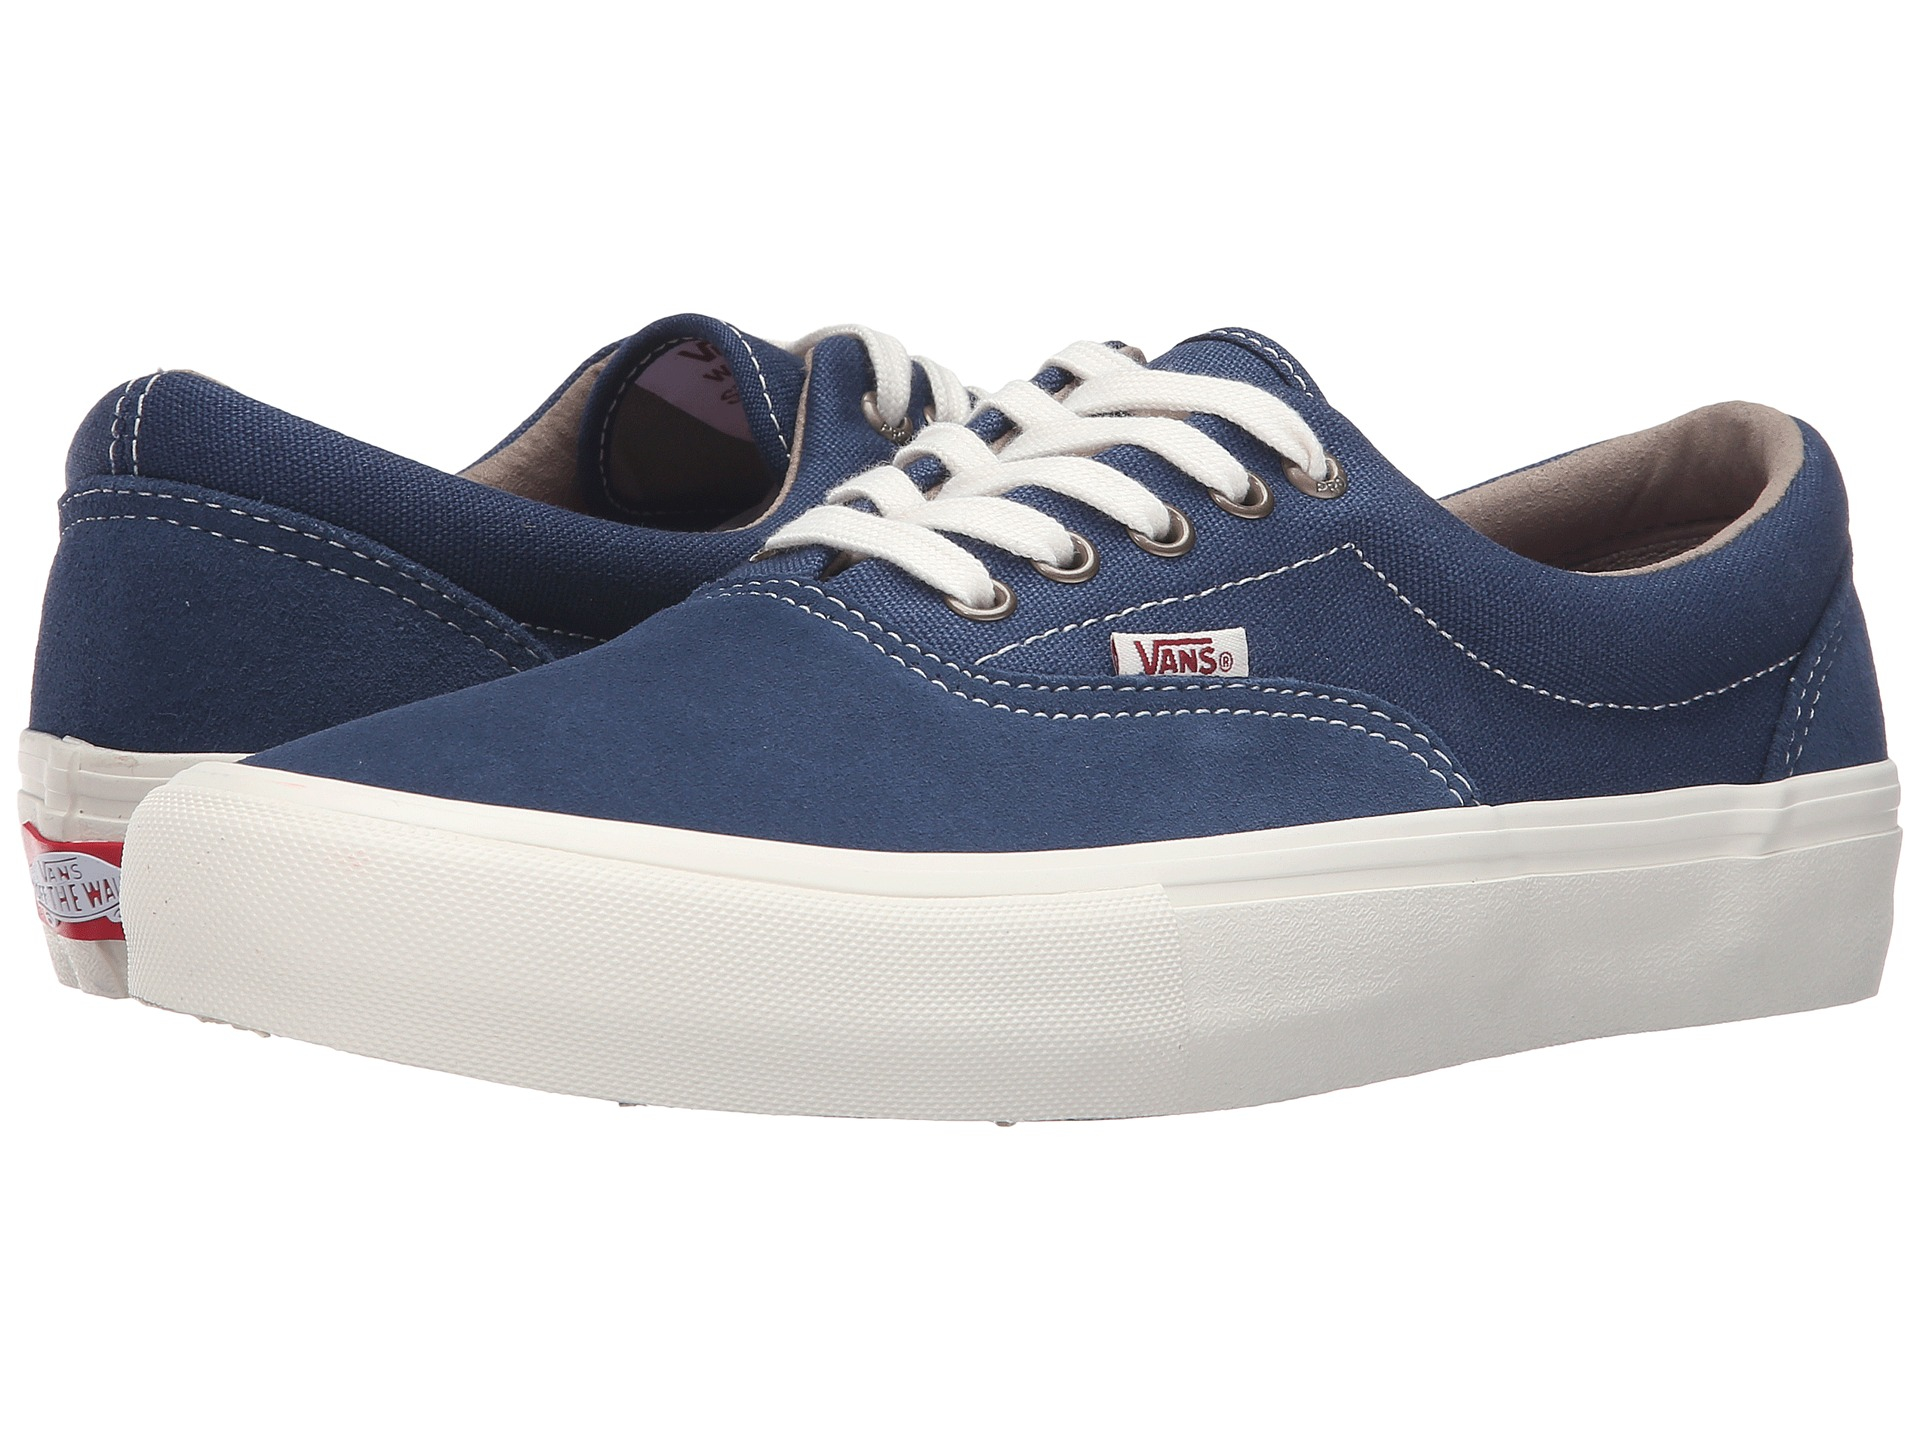 3698a709f95d28 Lyst - Vans Era Pro for Men